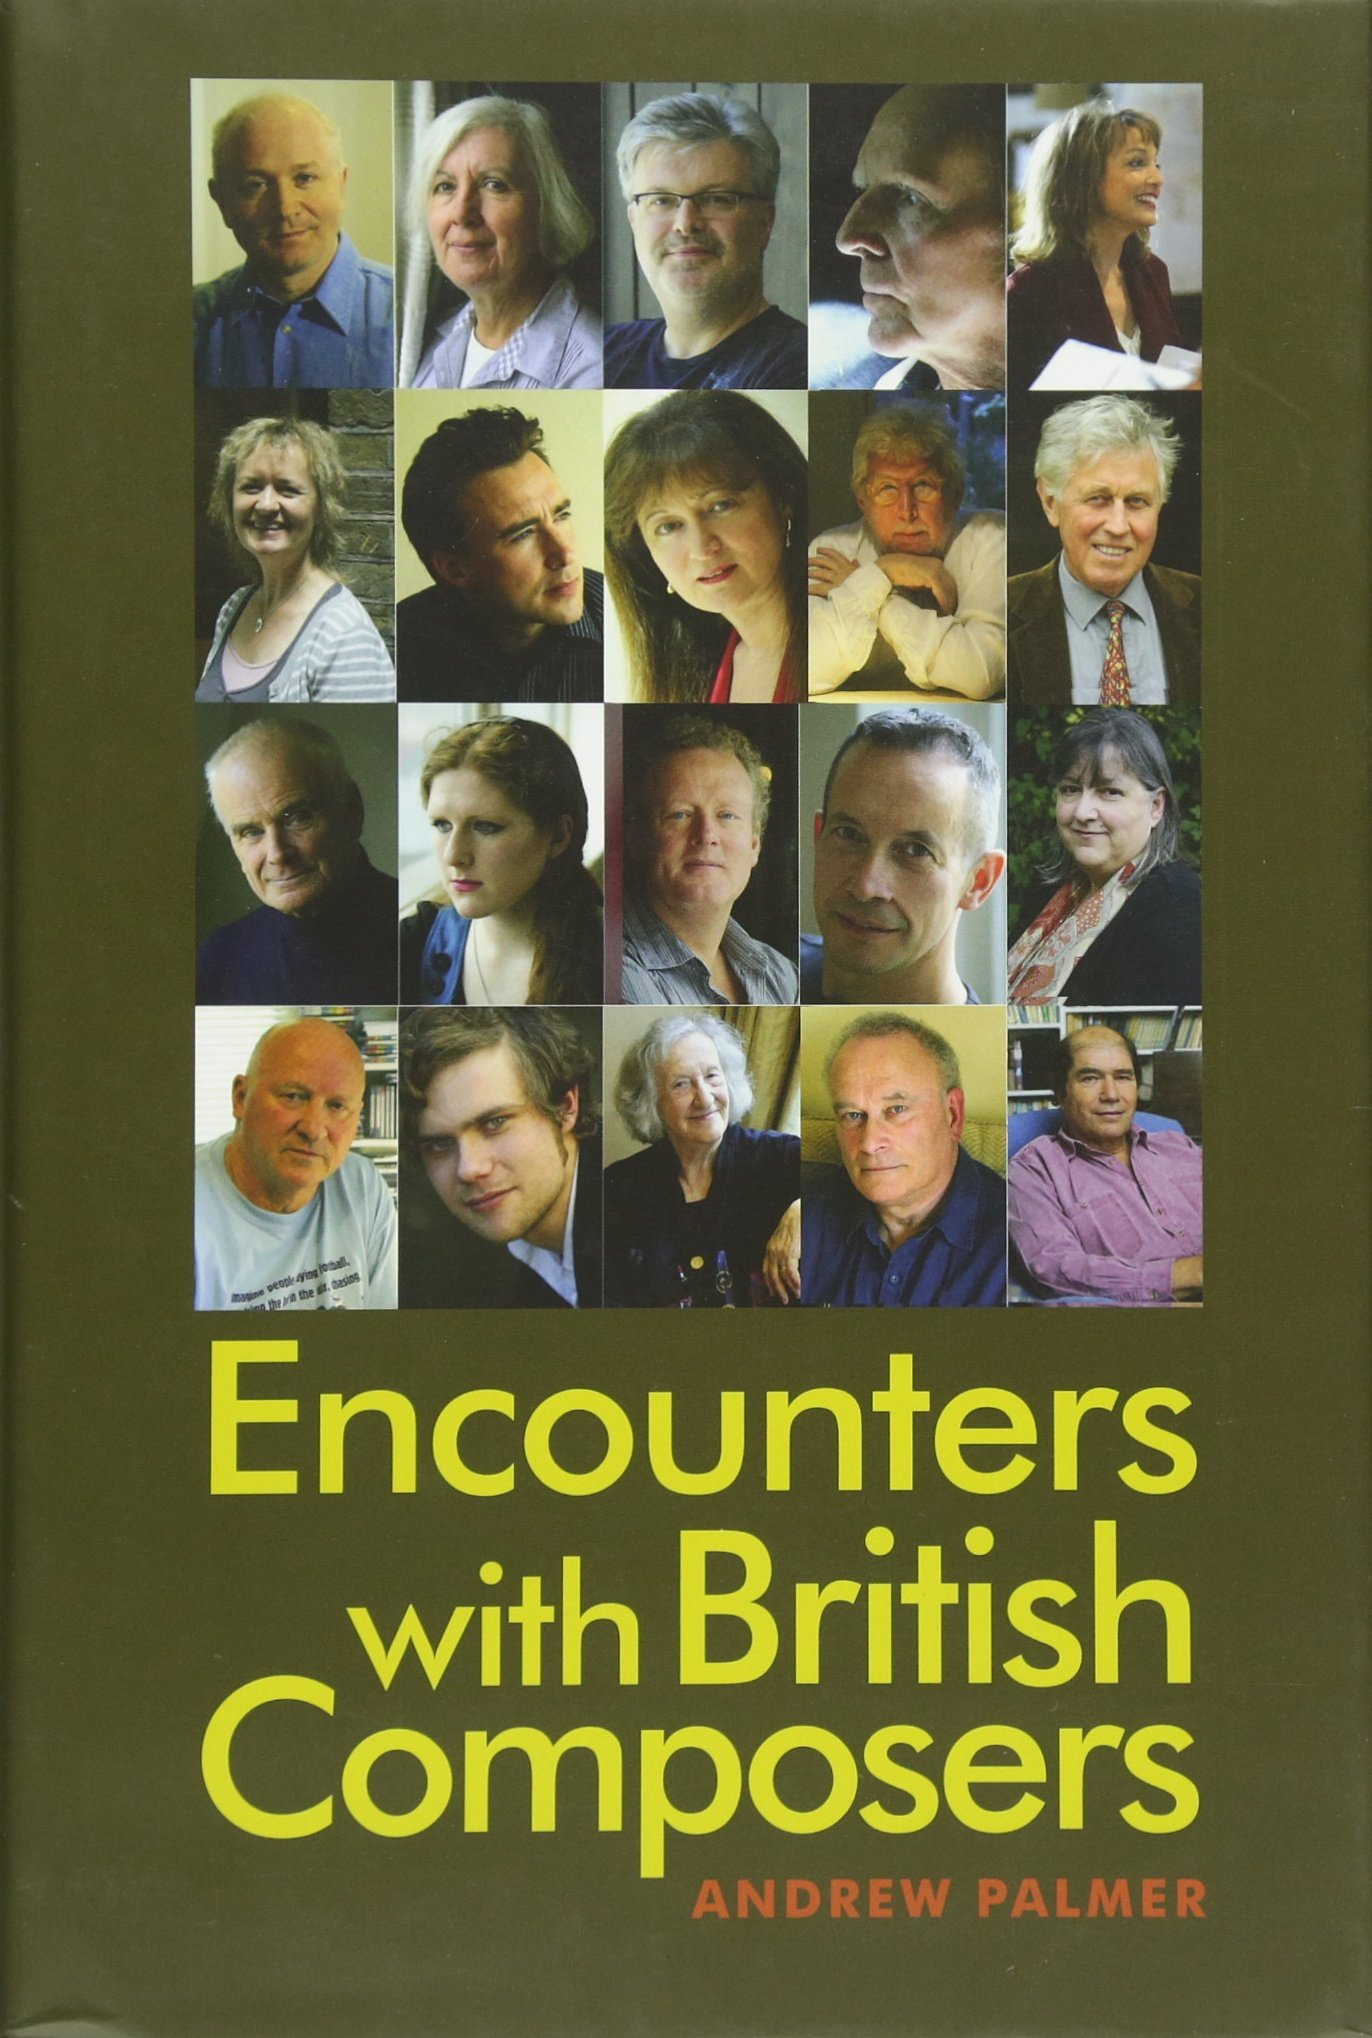 Encounters With Britishposers: Andrew Palmer: 9781783270705:  Amazon: Books